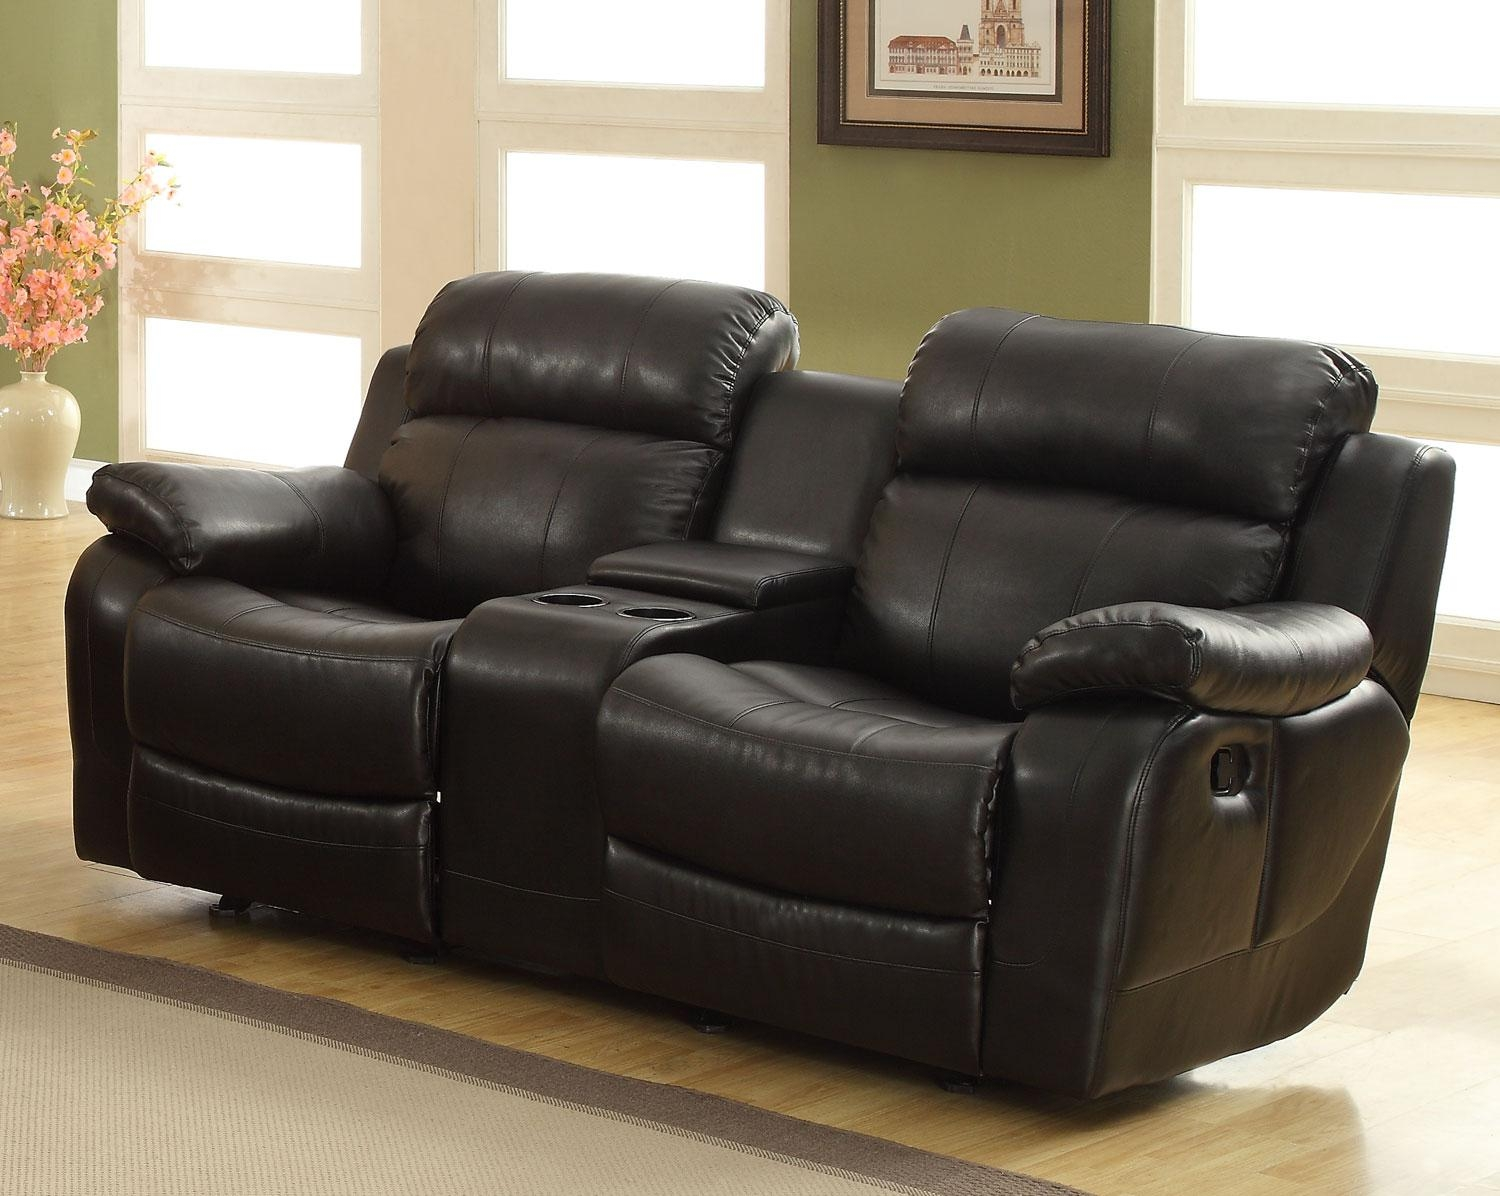 Sofas Center : Reclining Sofa Withnsole Meridian Regarding Sofas With Consoles (Image 16 of 20)